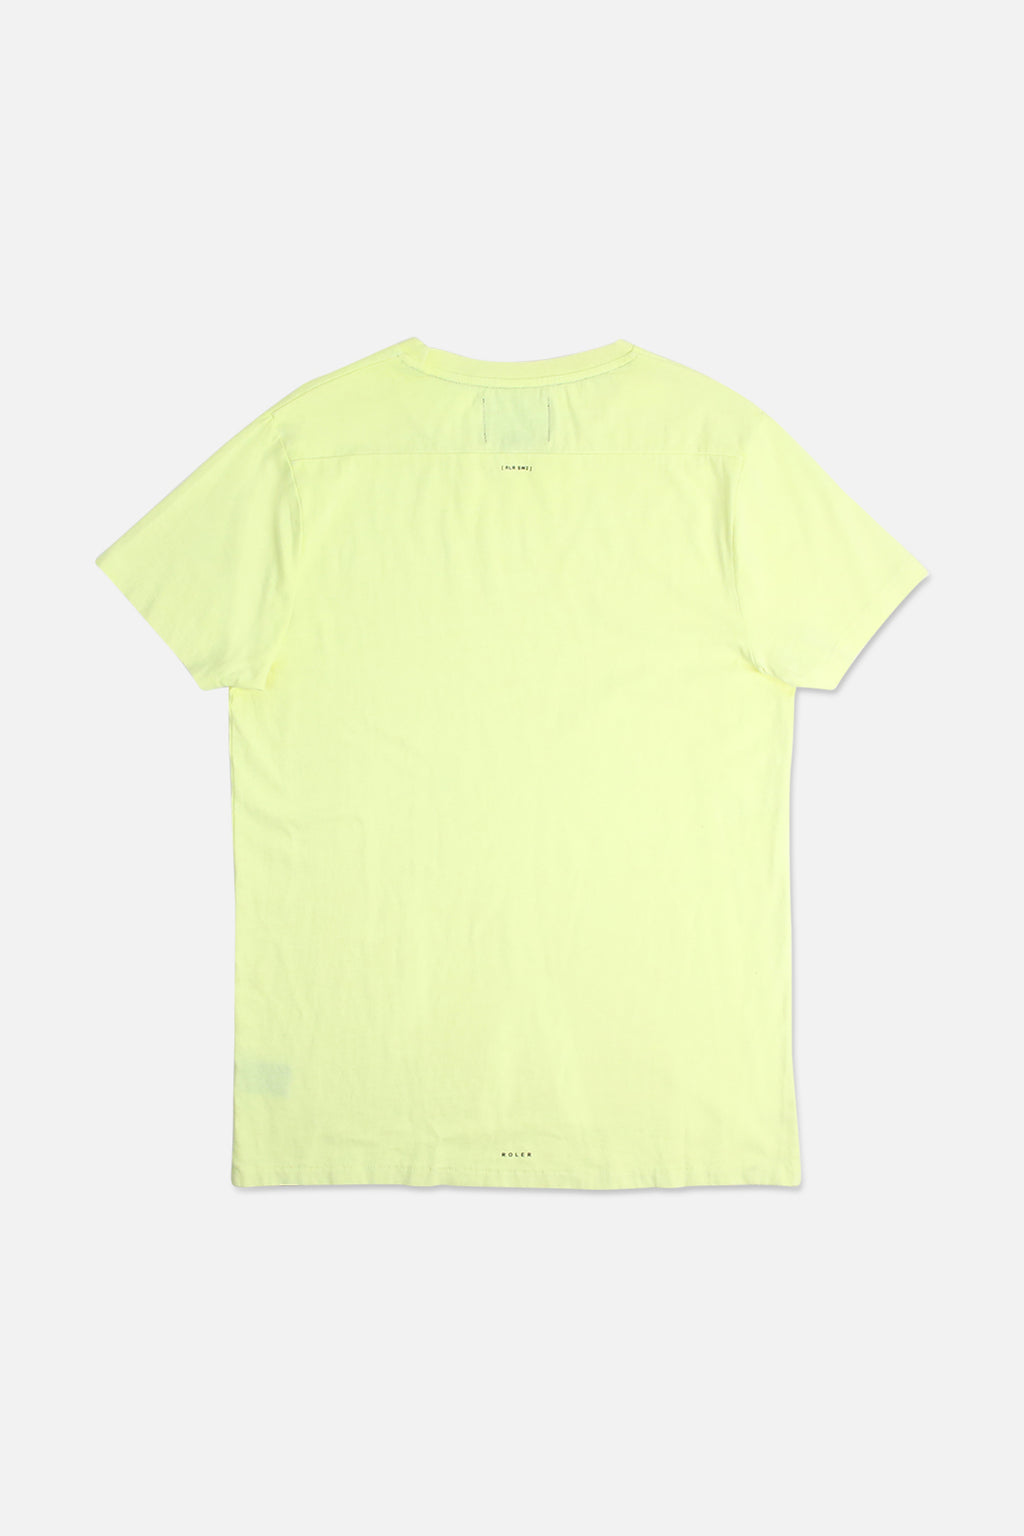 The Farrell Tee - Fluro Yellow - Roler Clothing